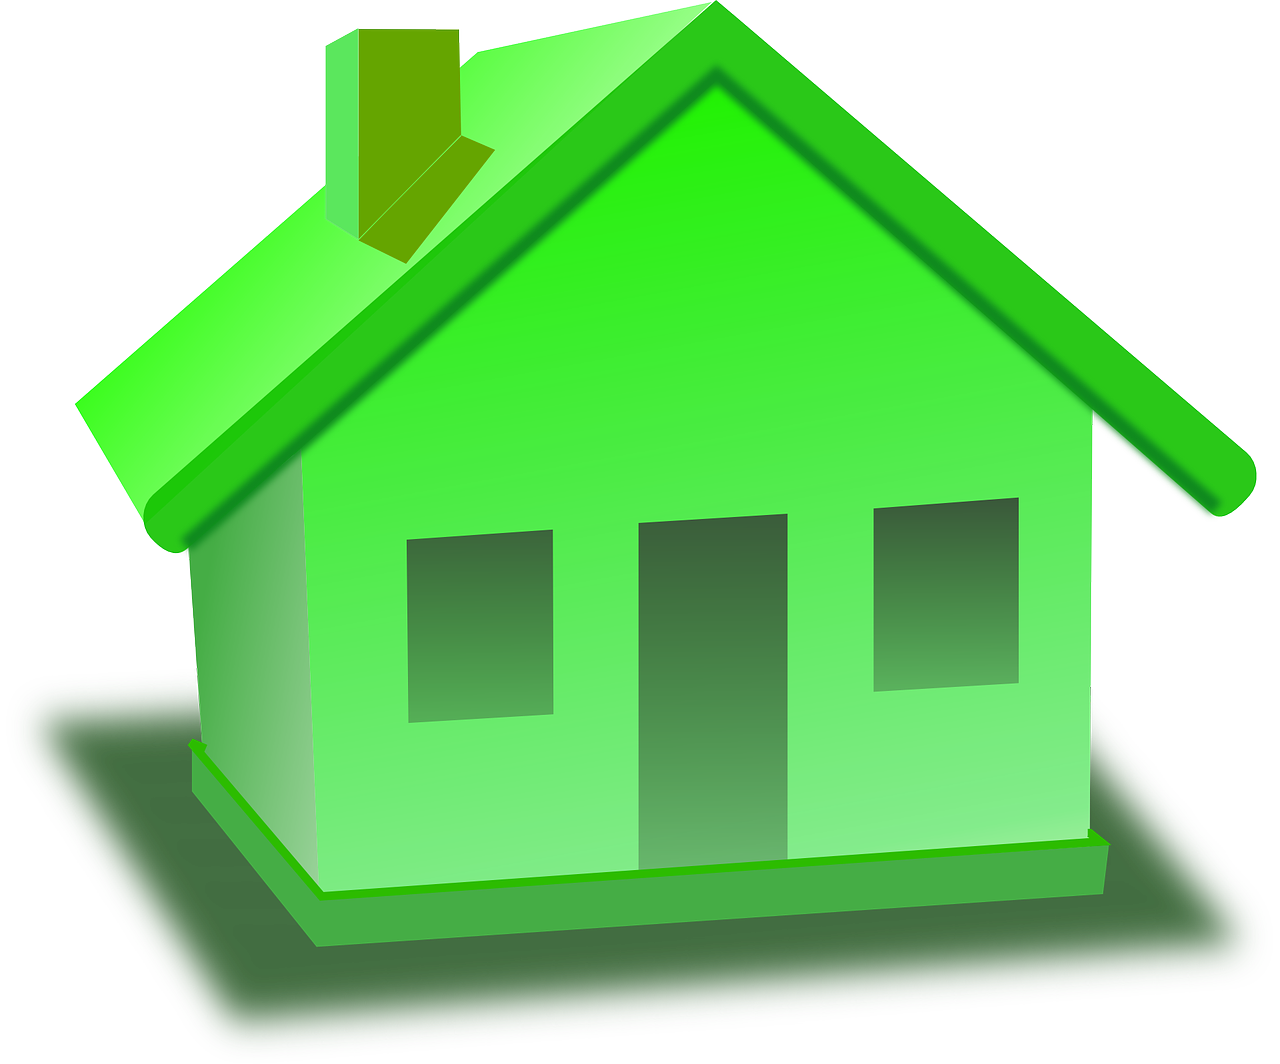 house-159106_1280.png